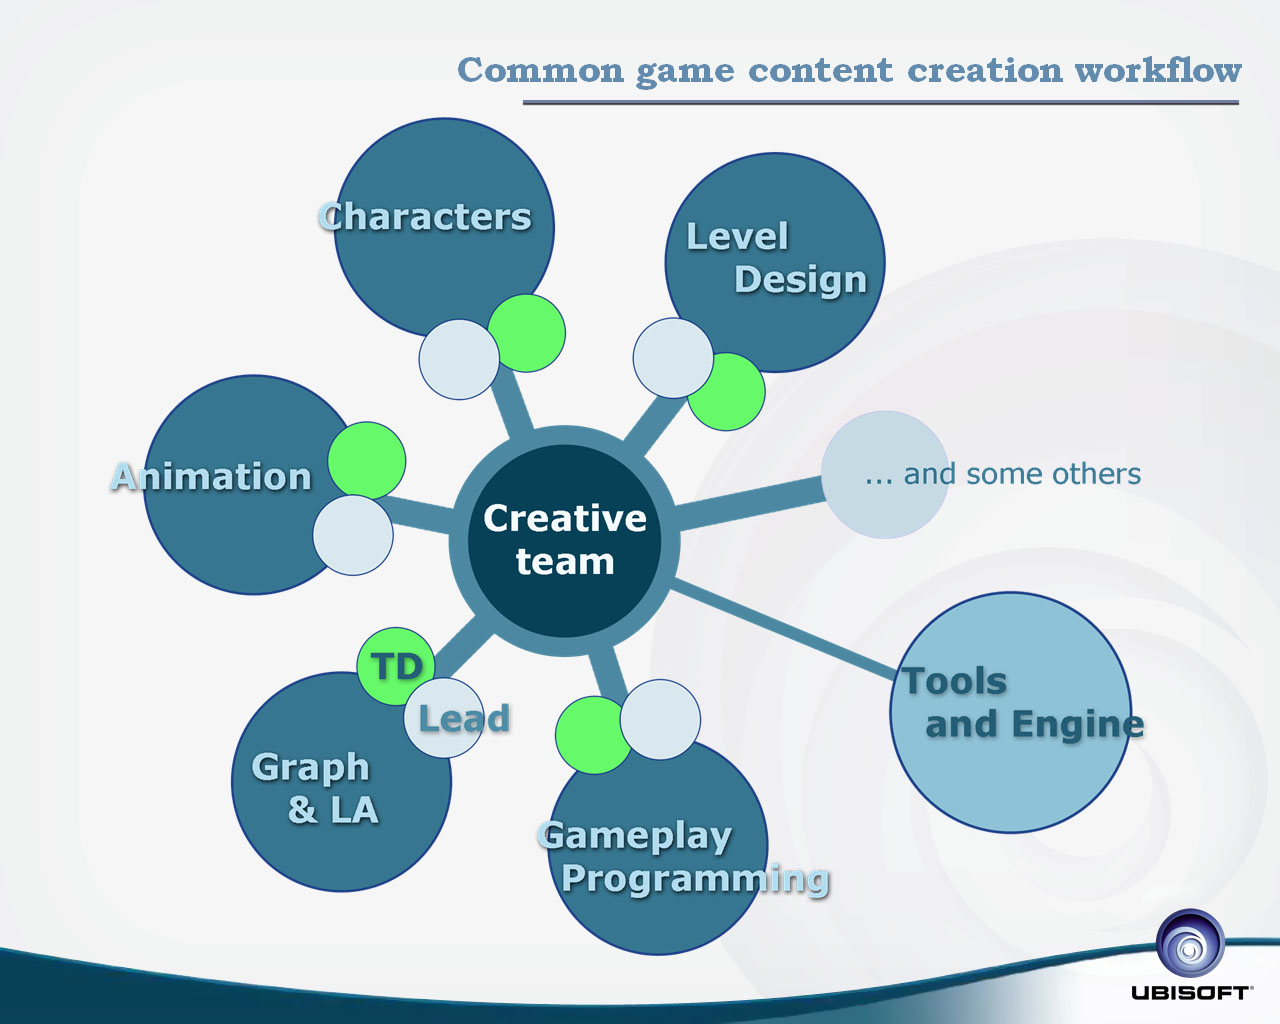 Common game content creation workflow